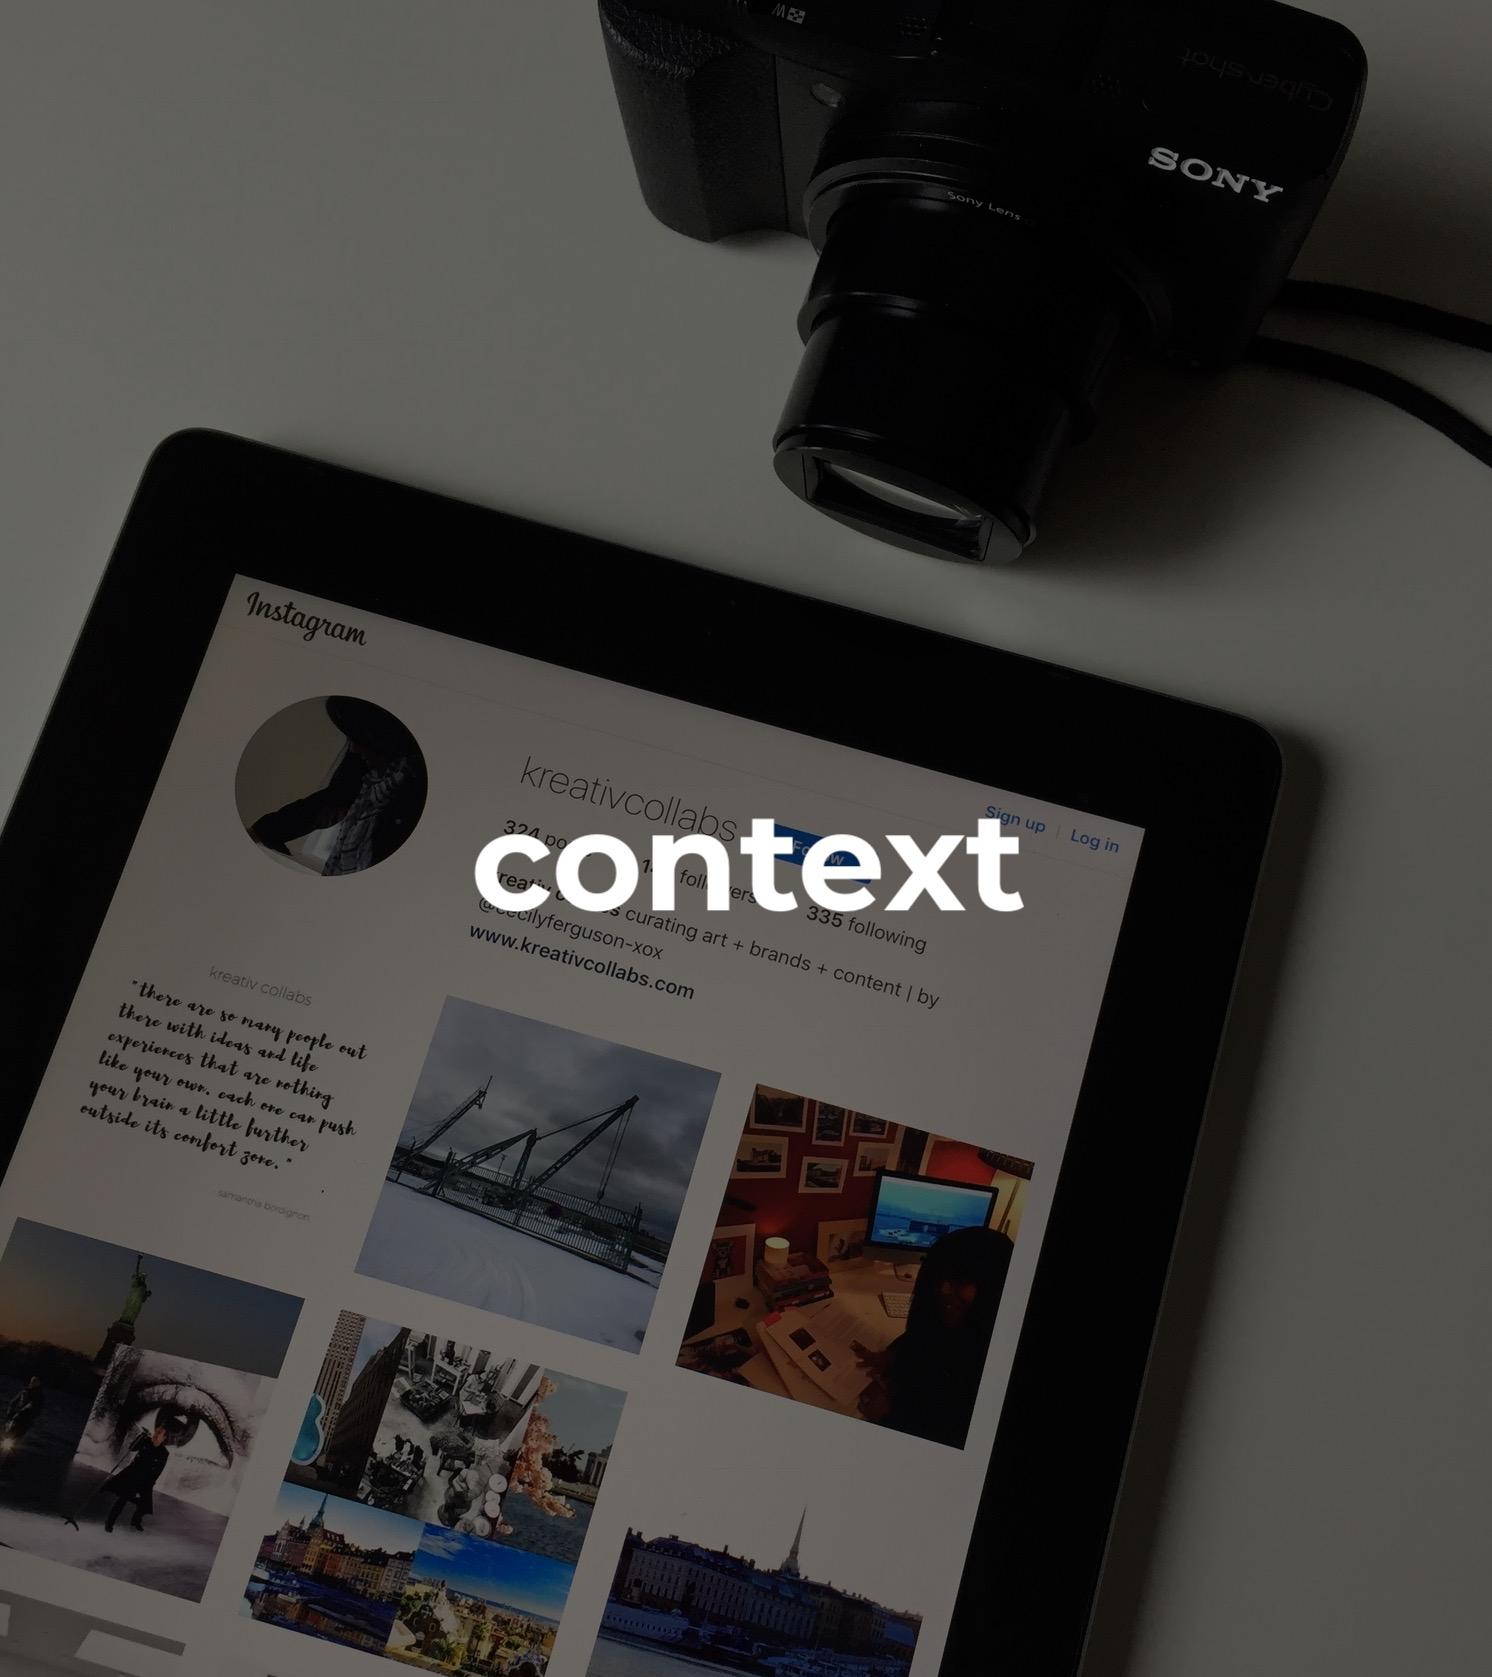 #context   want to invest in more social media time - i will set up your platform (or platforms), who to follow, share content and engage with your followers.